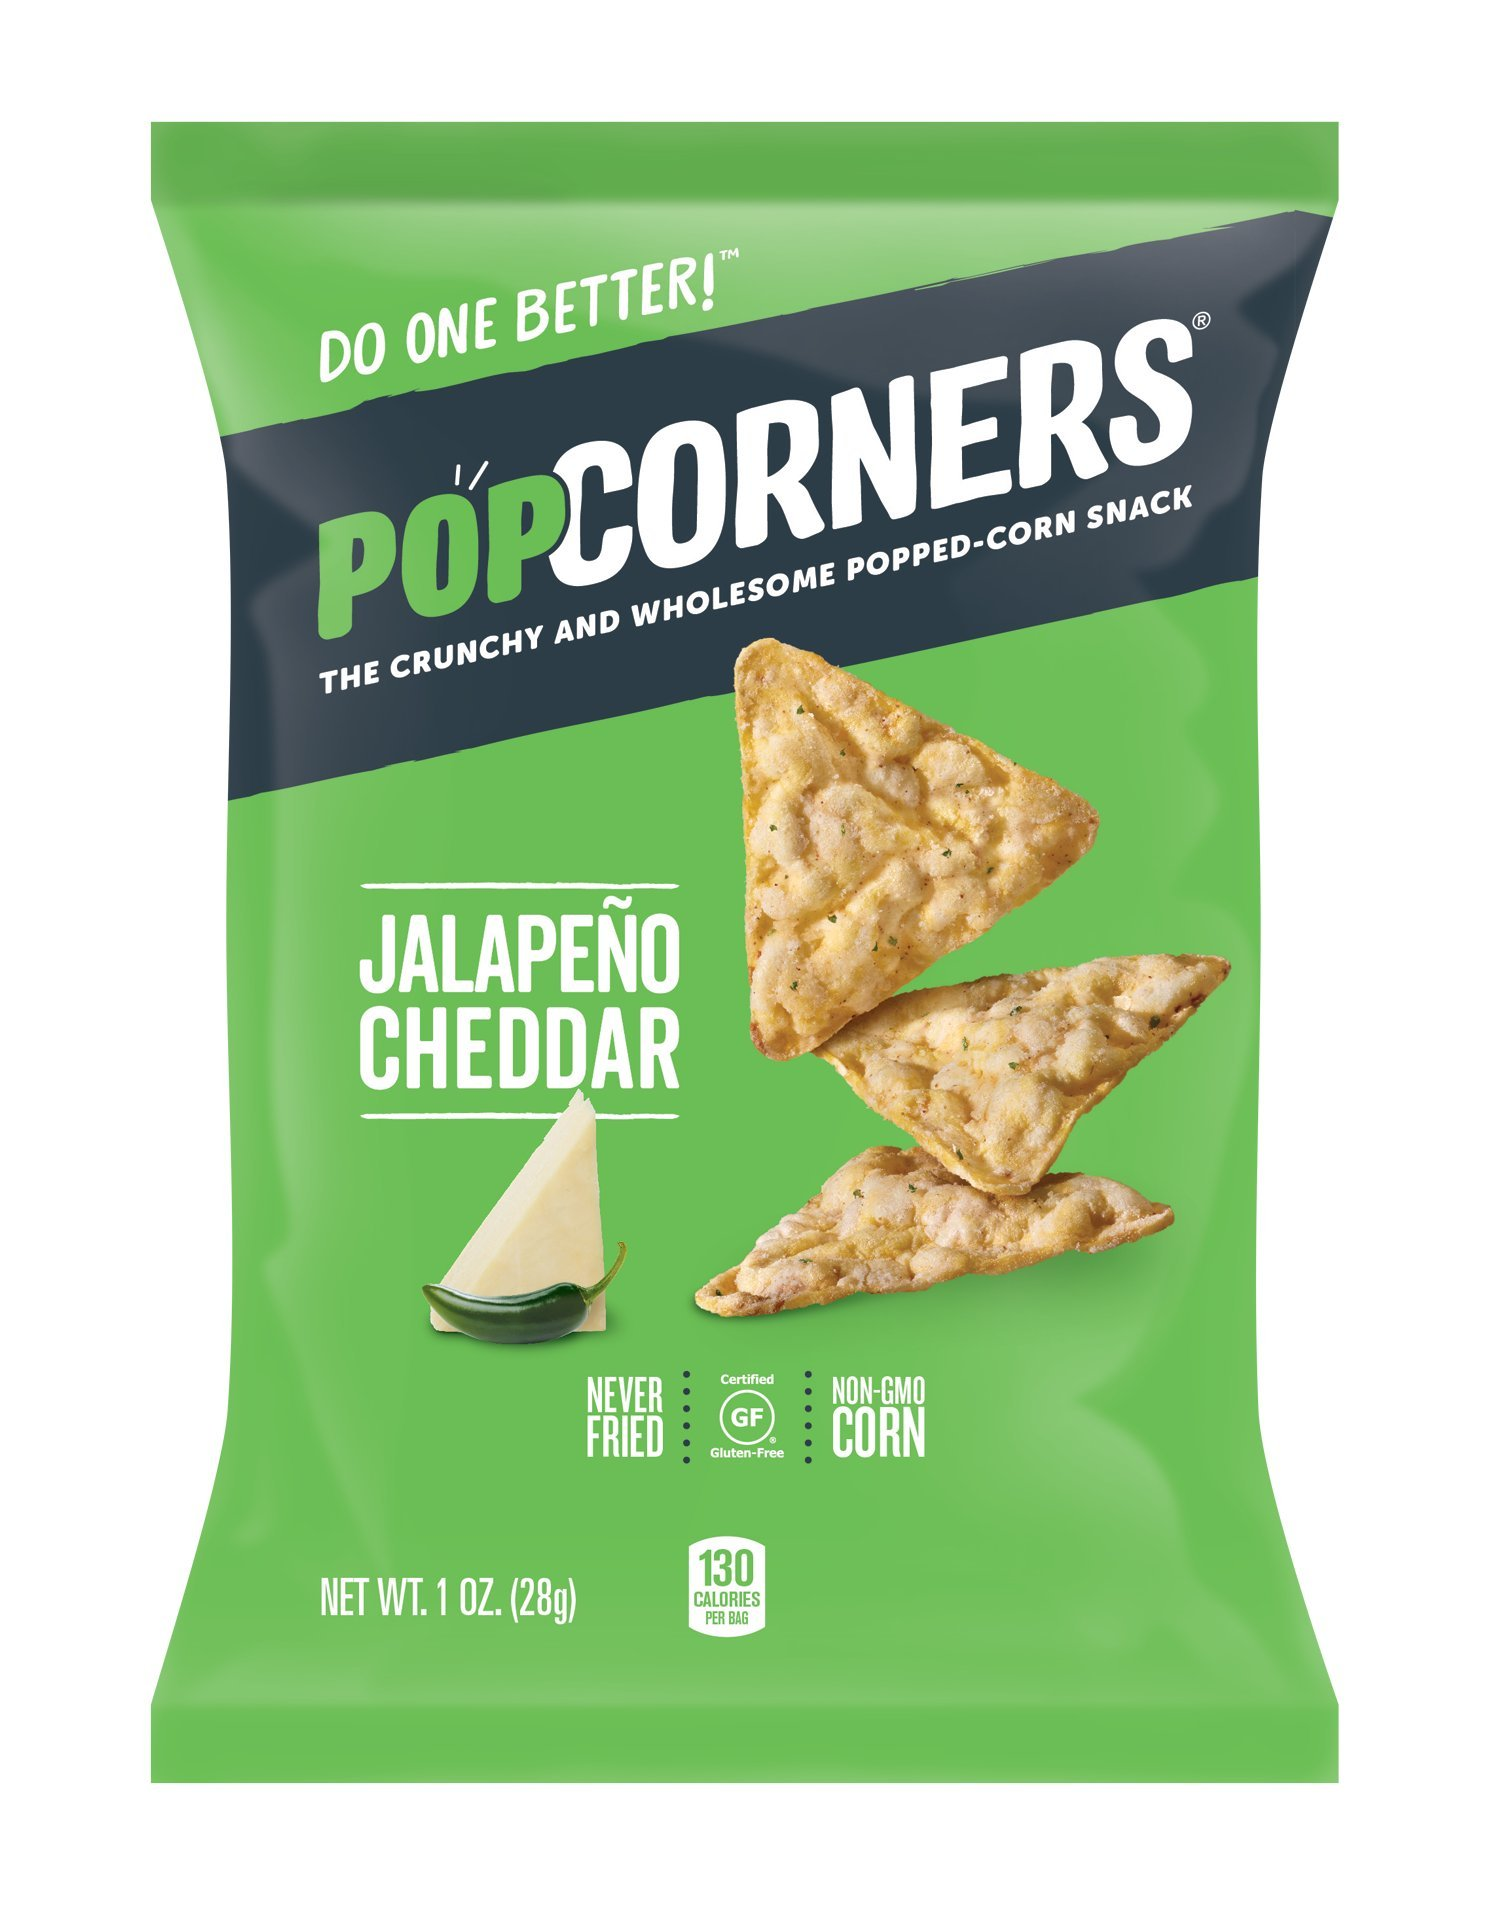 POPCORNERS Jalapeno Cheddar Popped Corn Snacks, Gluten Free, Single-Serve 1oz bags (Pack of 40)